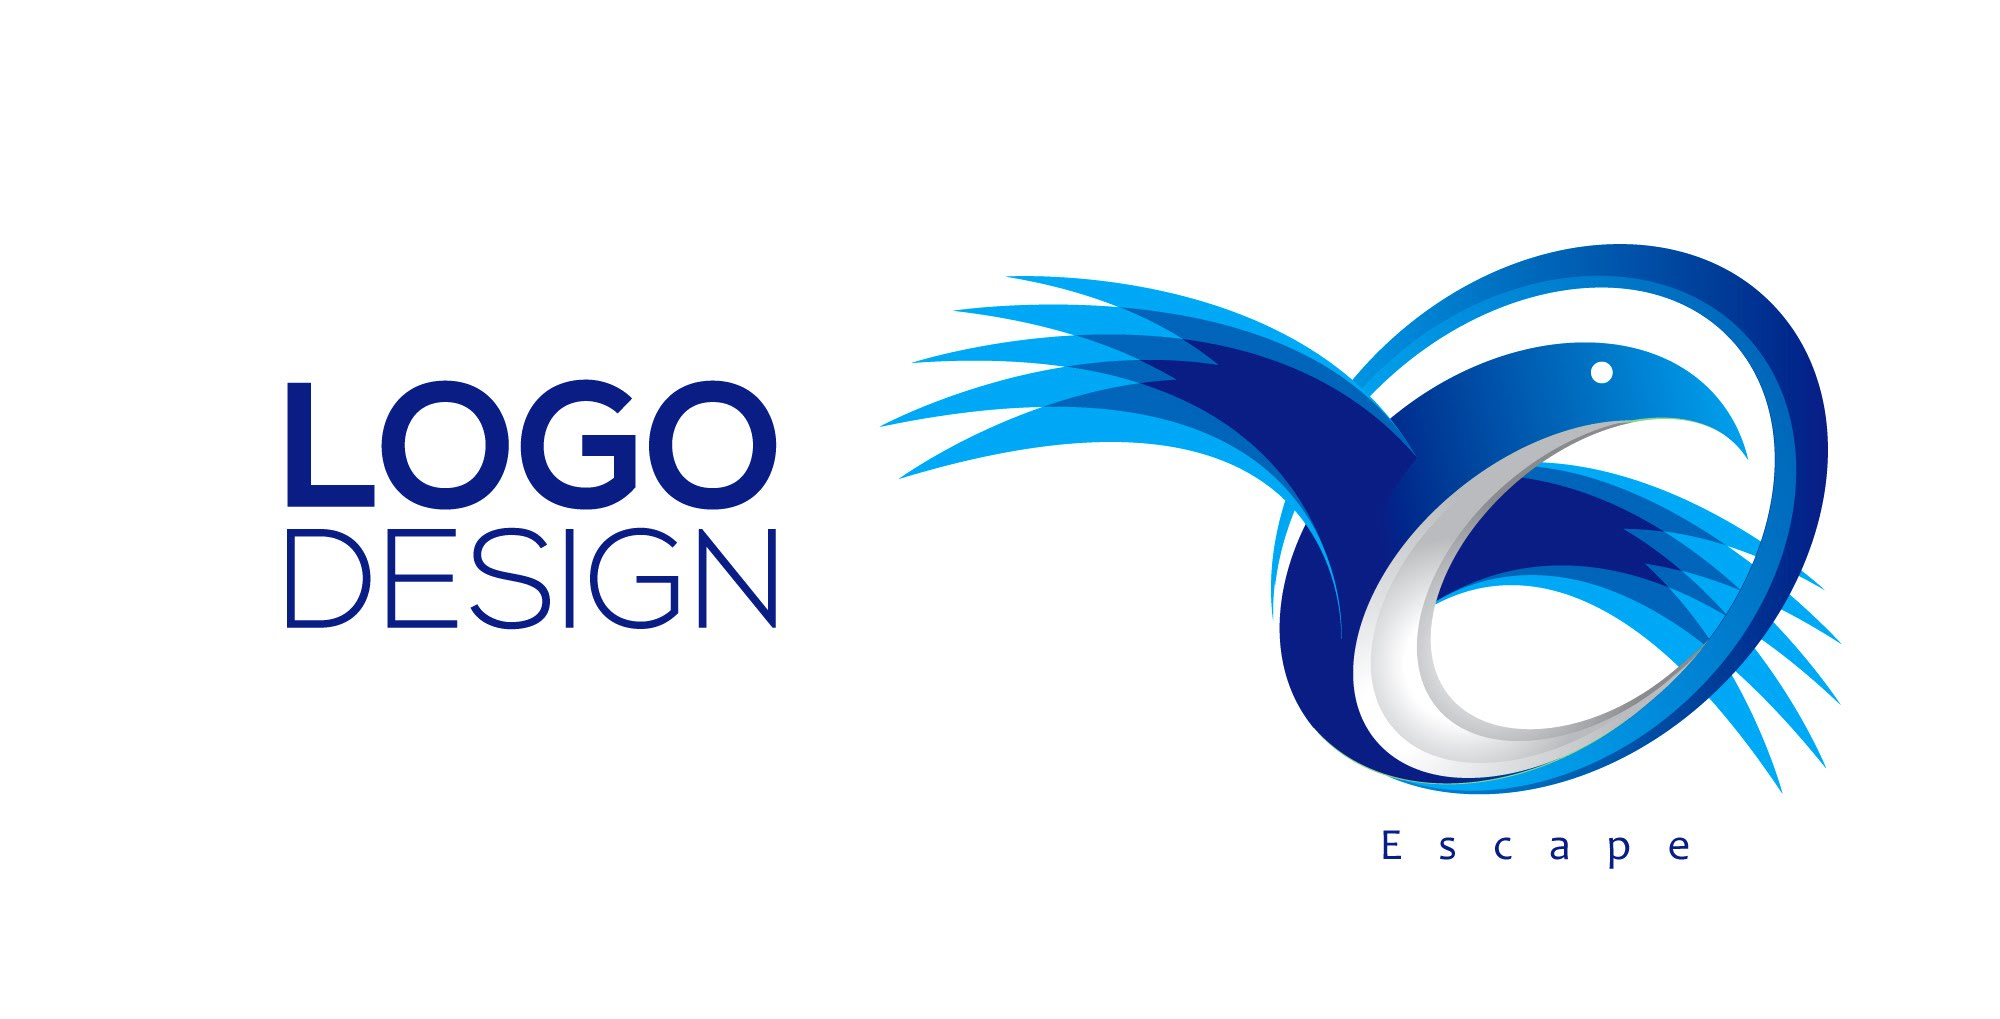 Logo Design And Photo Editing By Naveedkhan869